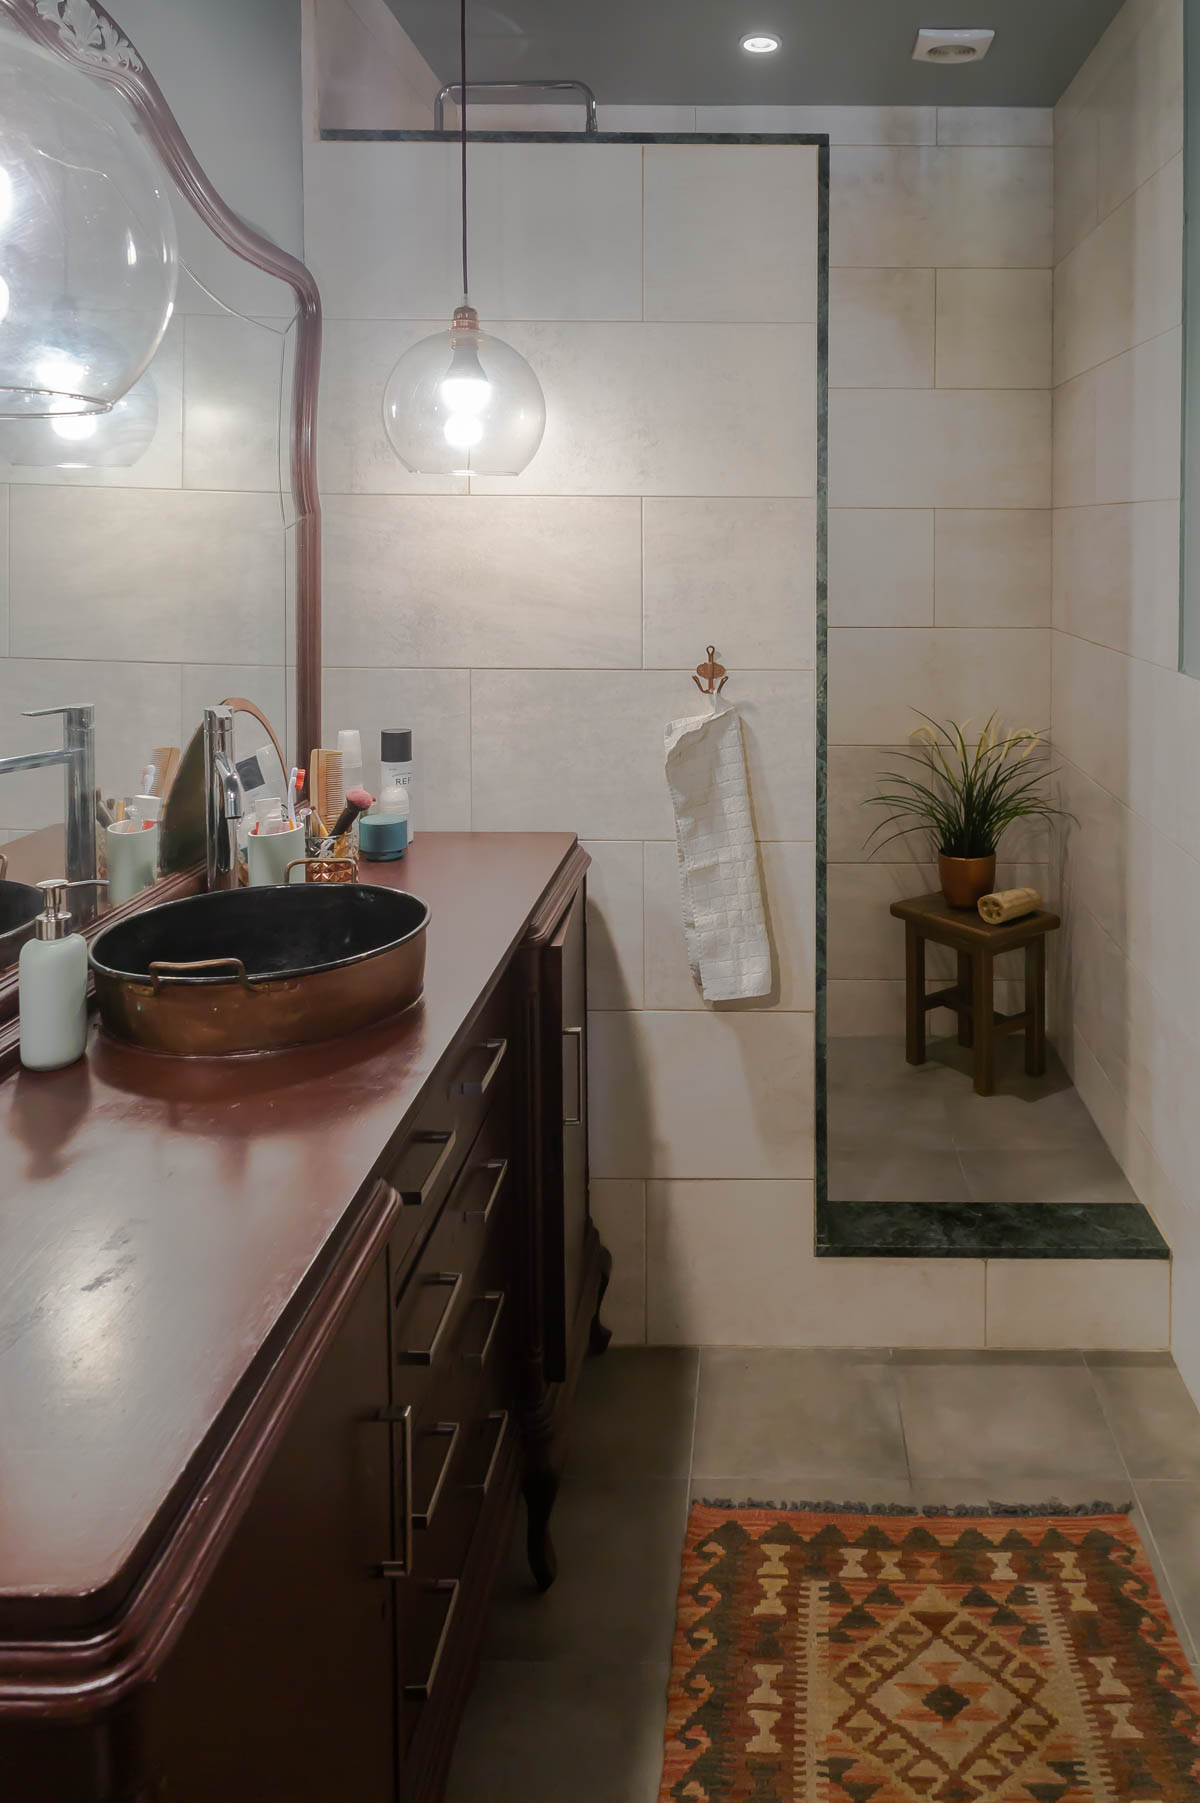 Barcelona home tour: ensuite bathroom with recycled vanity